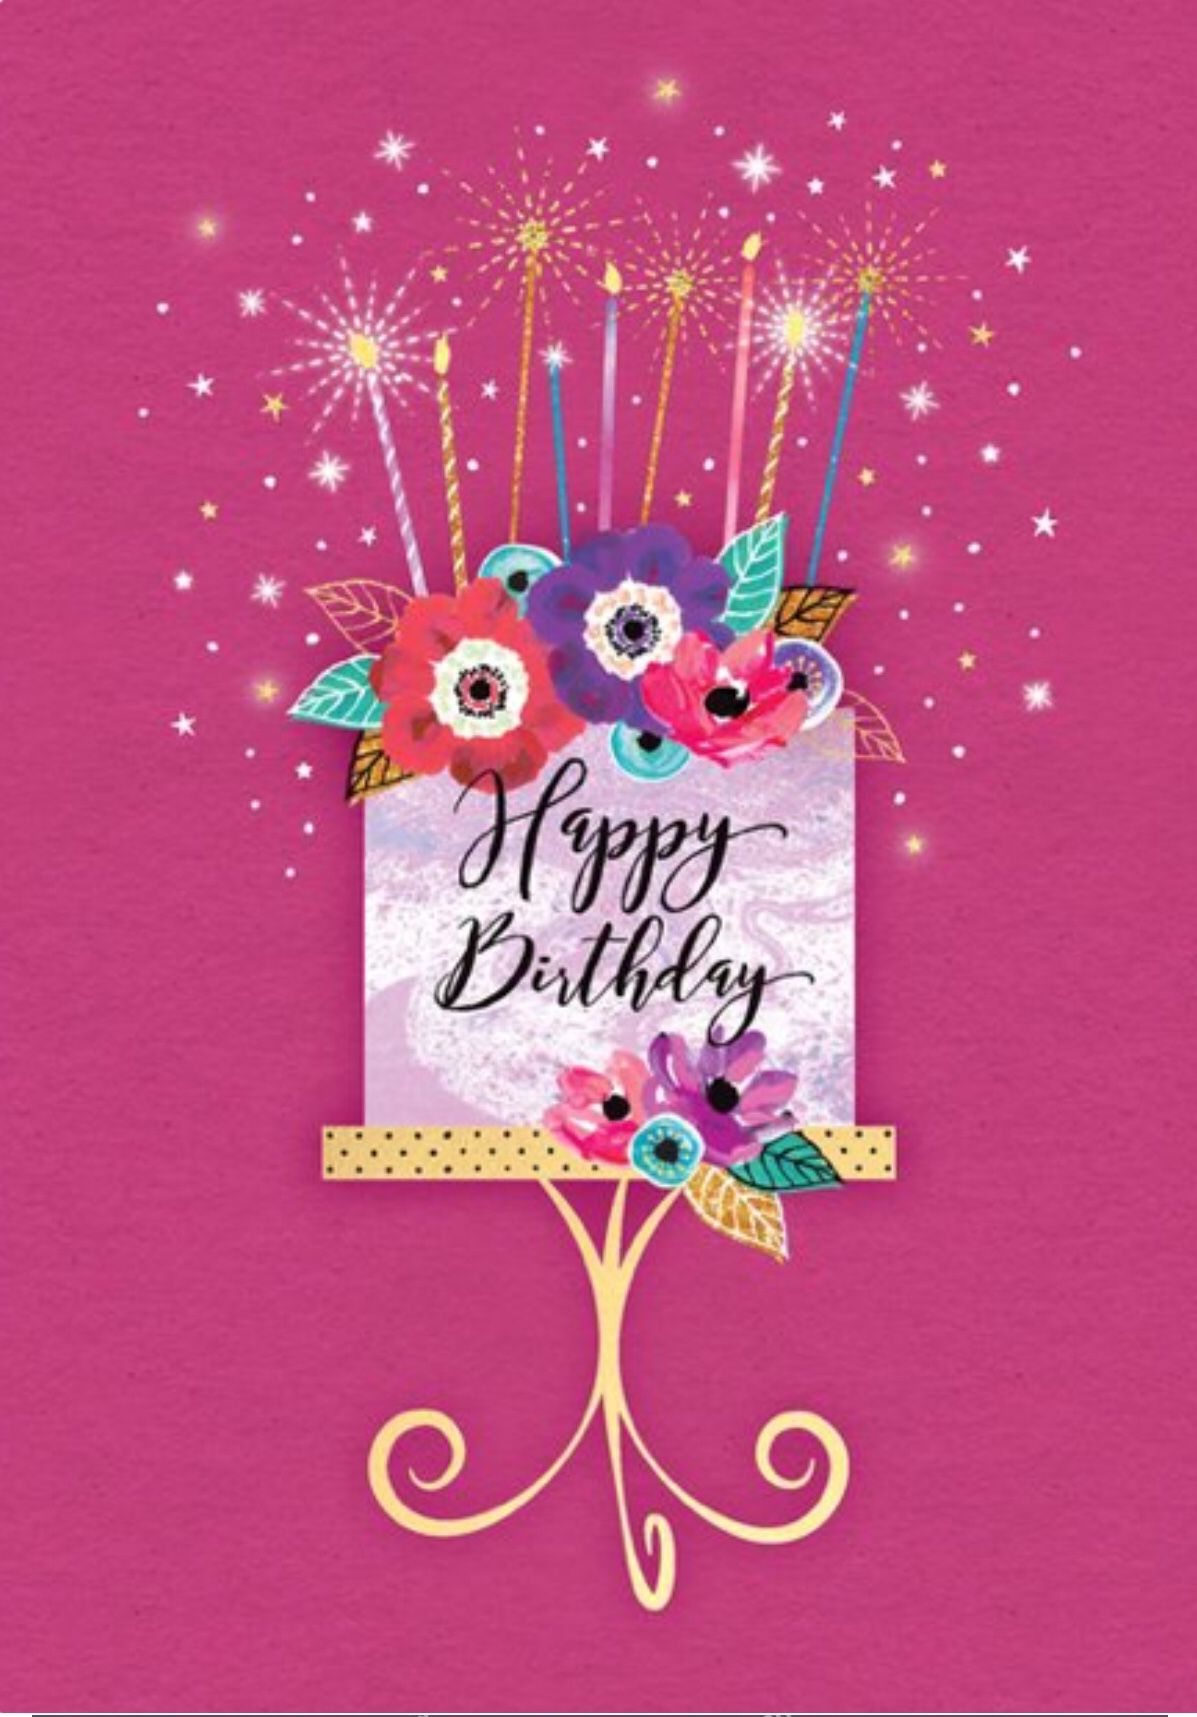 Pin by stephanie moseley blum on birthday wishes in pinterest